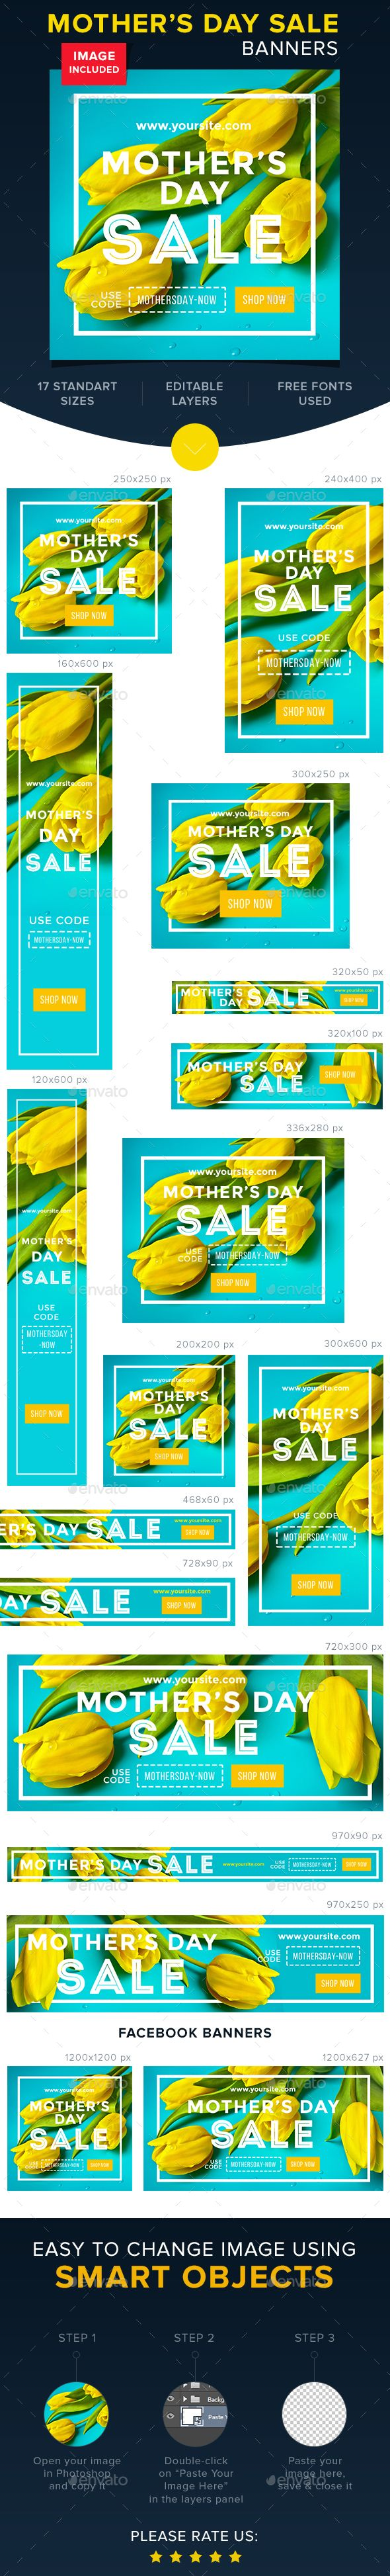 Mother's Day Sale Banners, web design